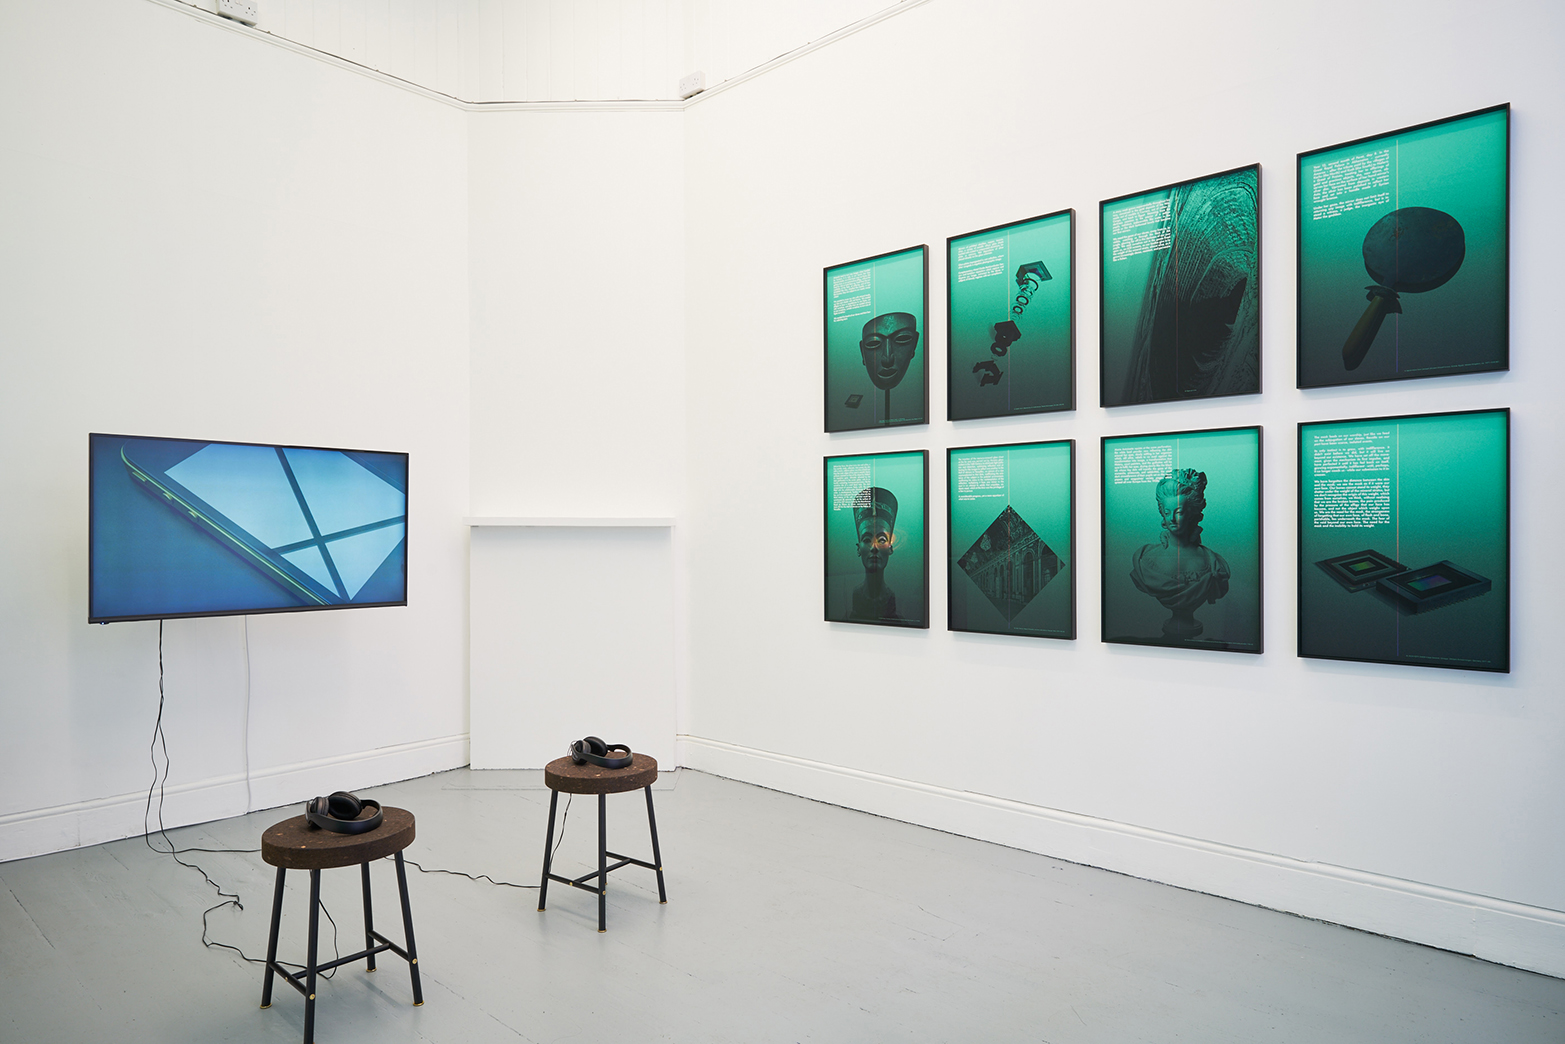 David Ferrando Giraut, installation view at Tenderixel, 2017.